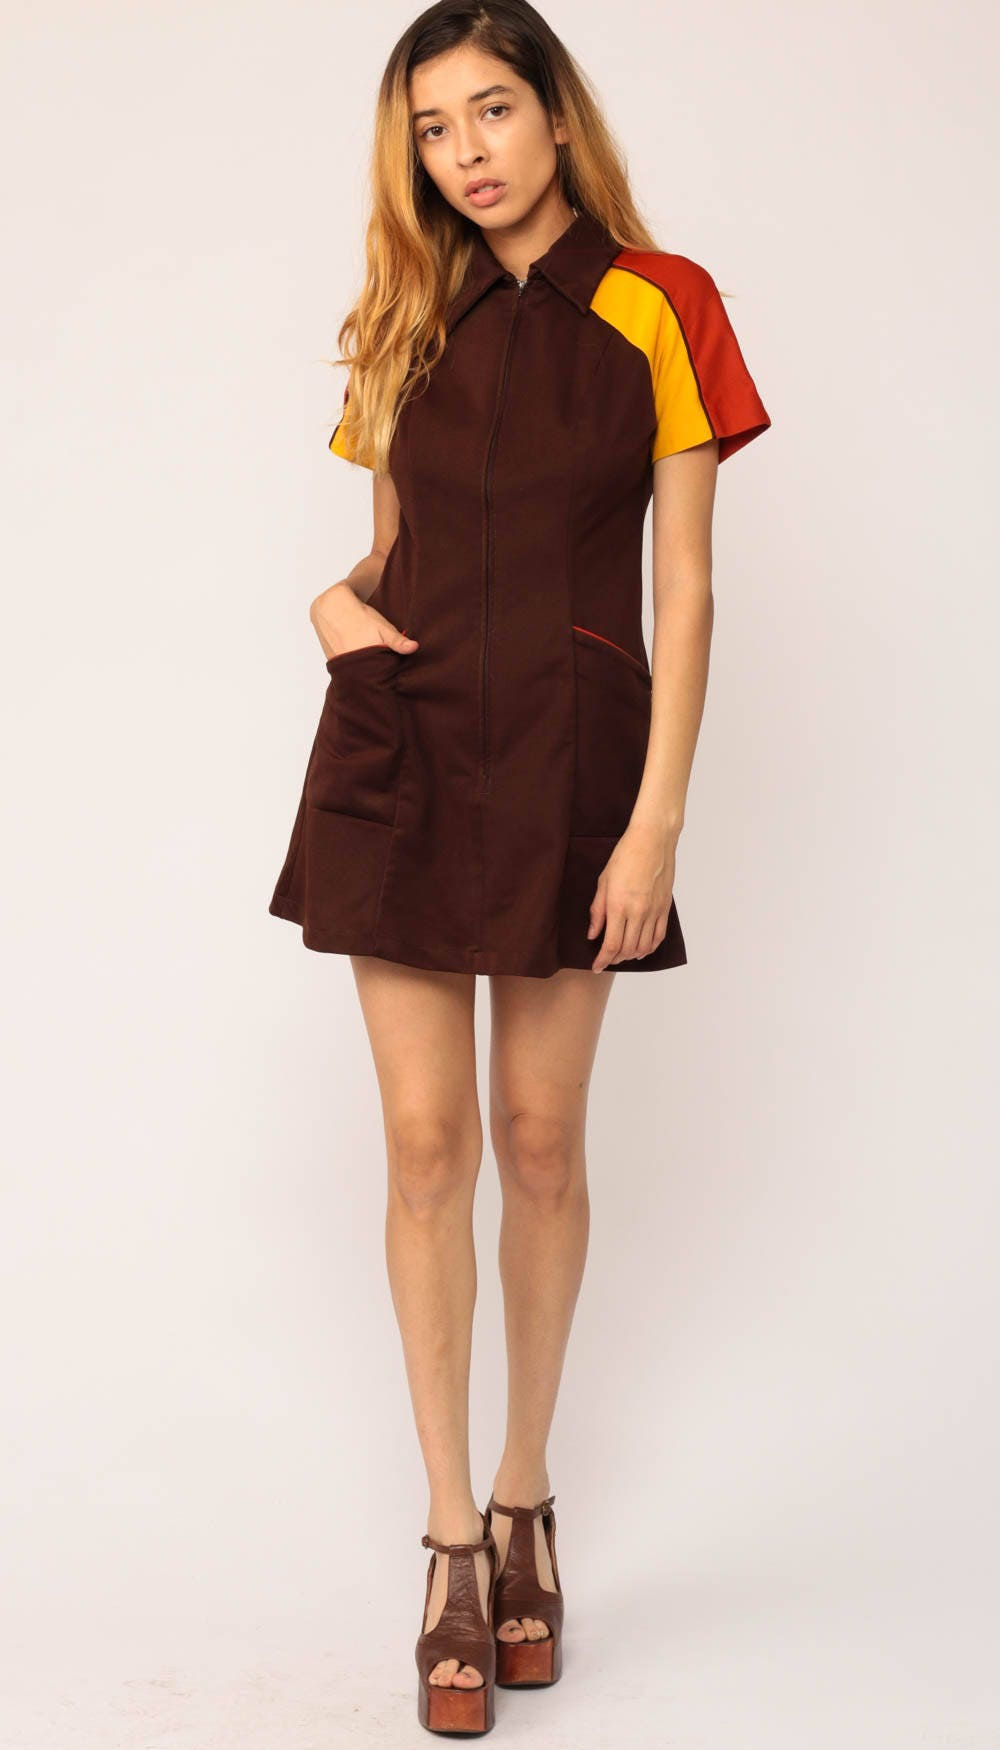 70s Mini Dress Space Age Shift Mod Waitress Uniform Space